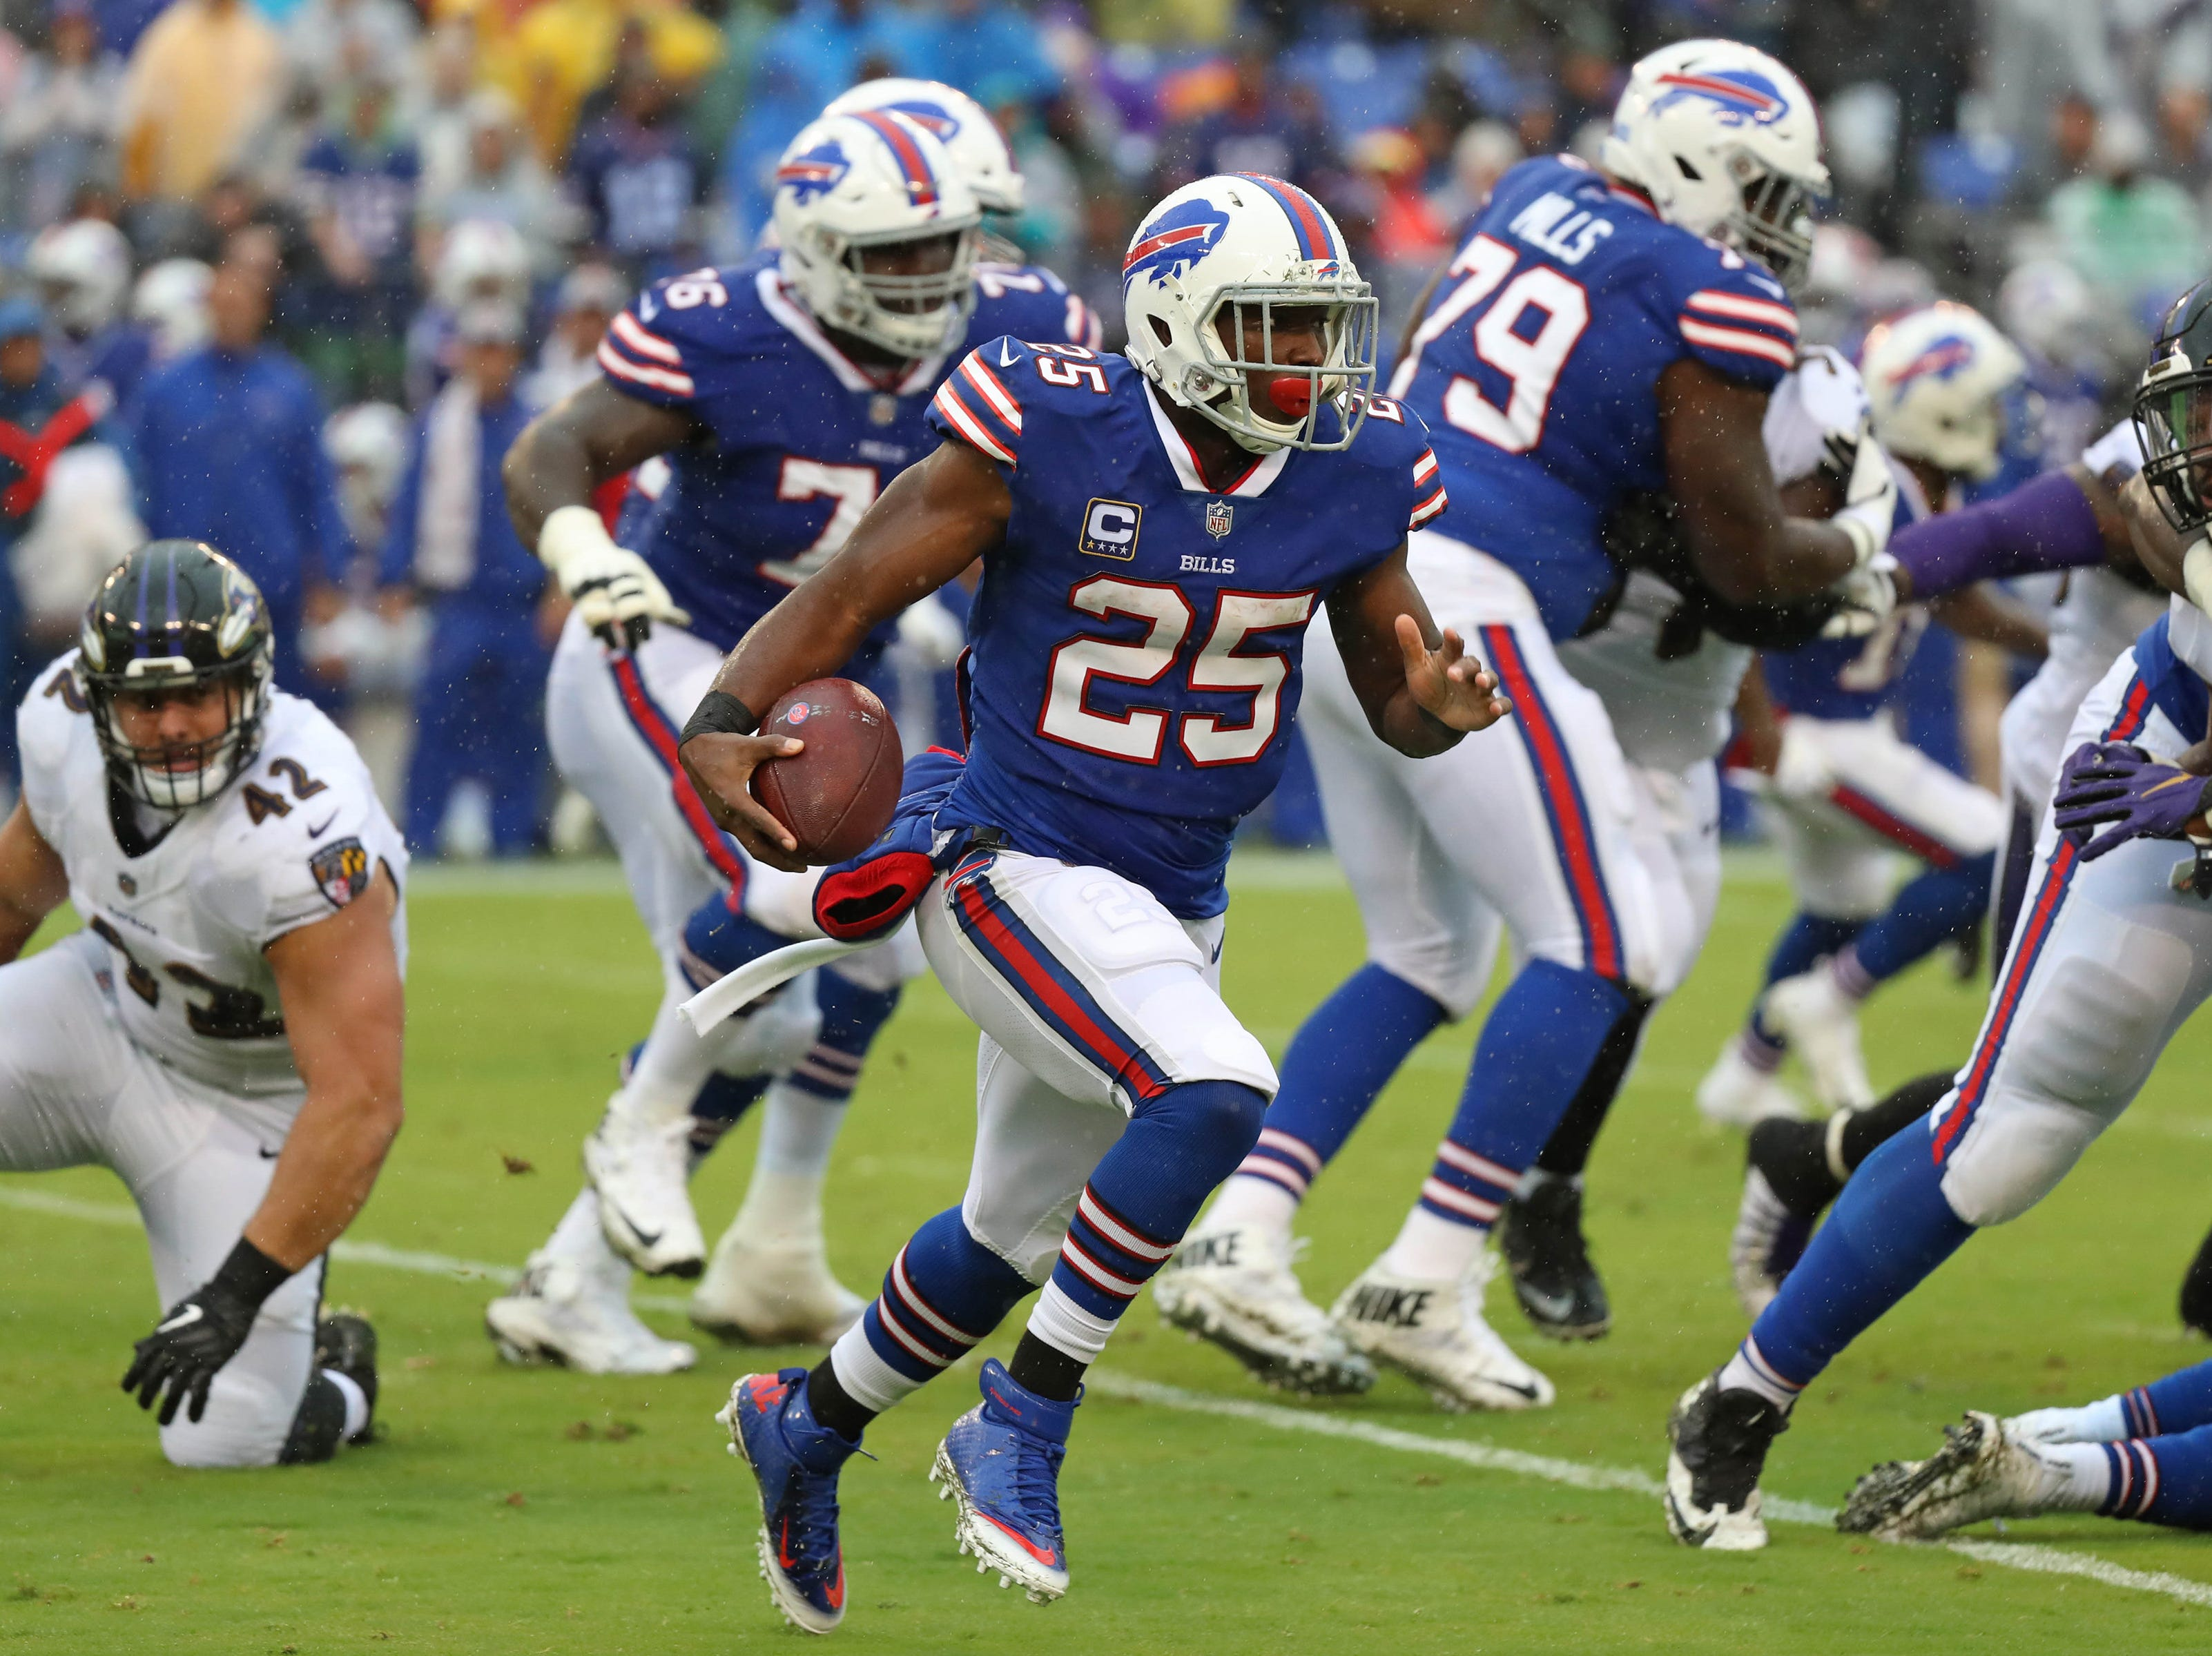 Buffalo Bills running back LeSean McCoy (25) runs for a gain against the Baltimore Ravens at M&T Bank Stadium. Mandatory Credit: Mitch Stringer-USA TODAY Sports